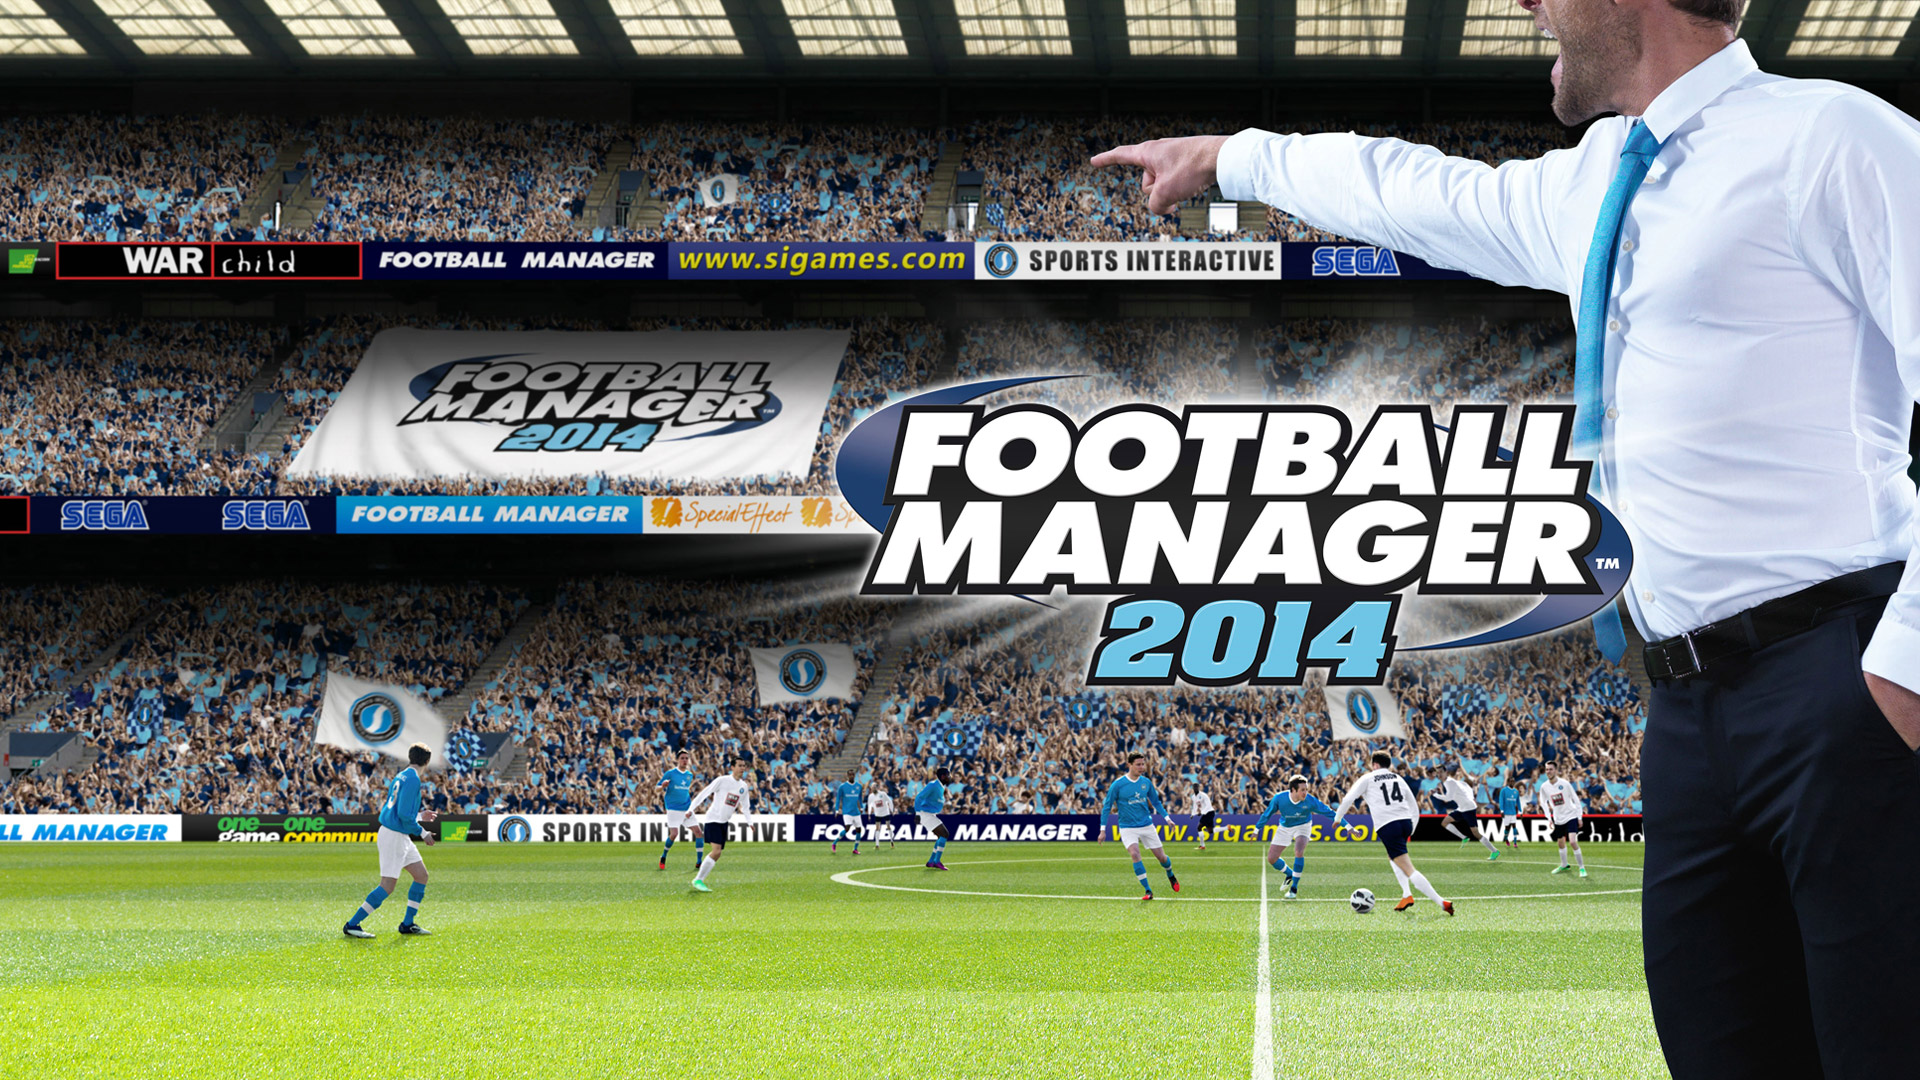 Free Football Manager 2014 Wallpaper in 1920x1080